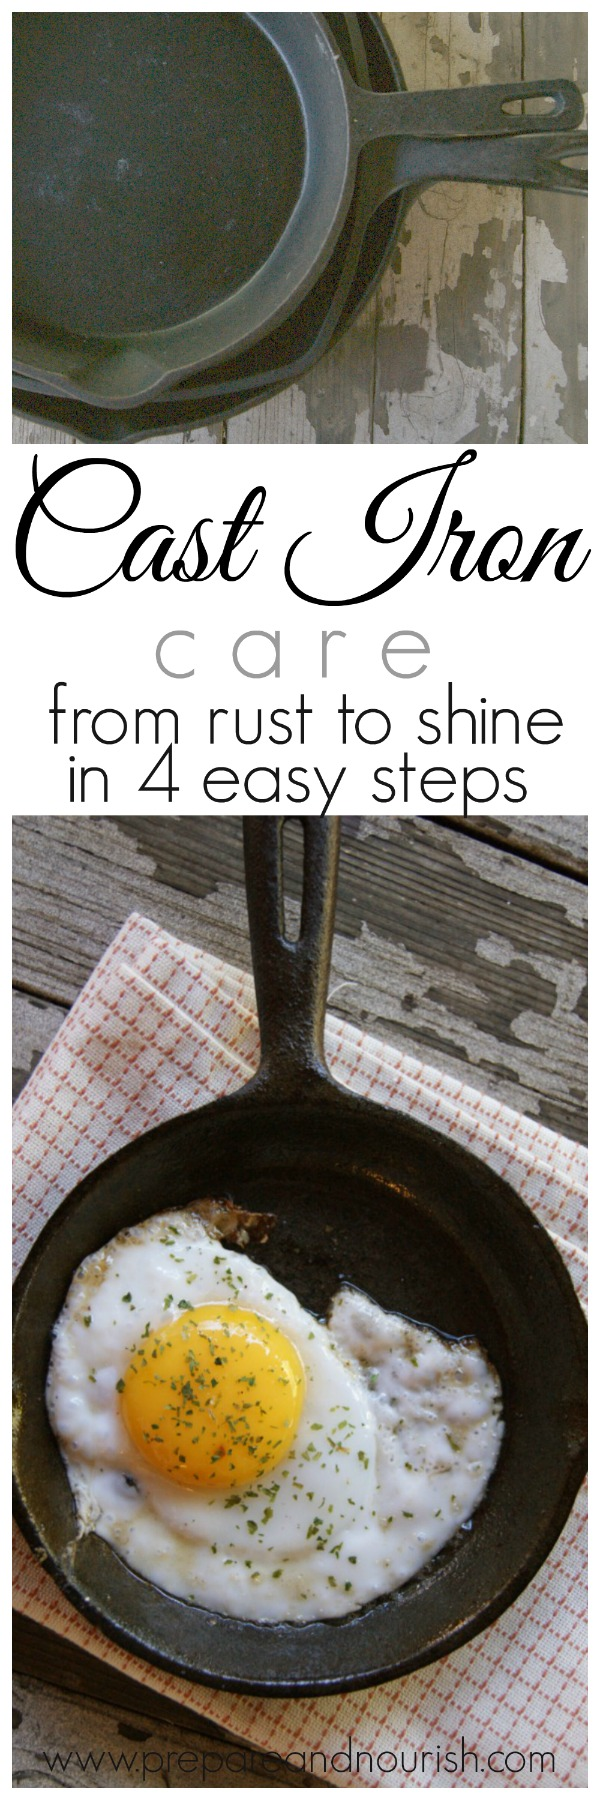 Taking care of cast iron pans will become second nature after a few uses of properly seasoned pans.